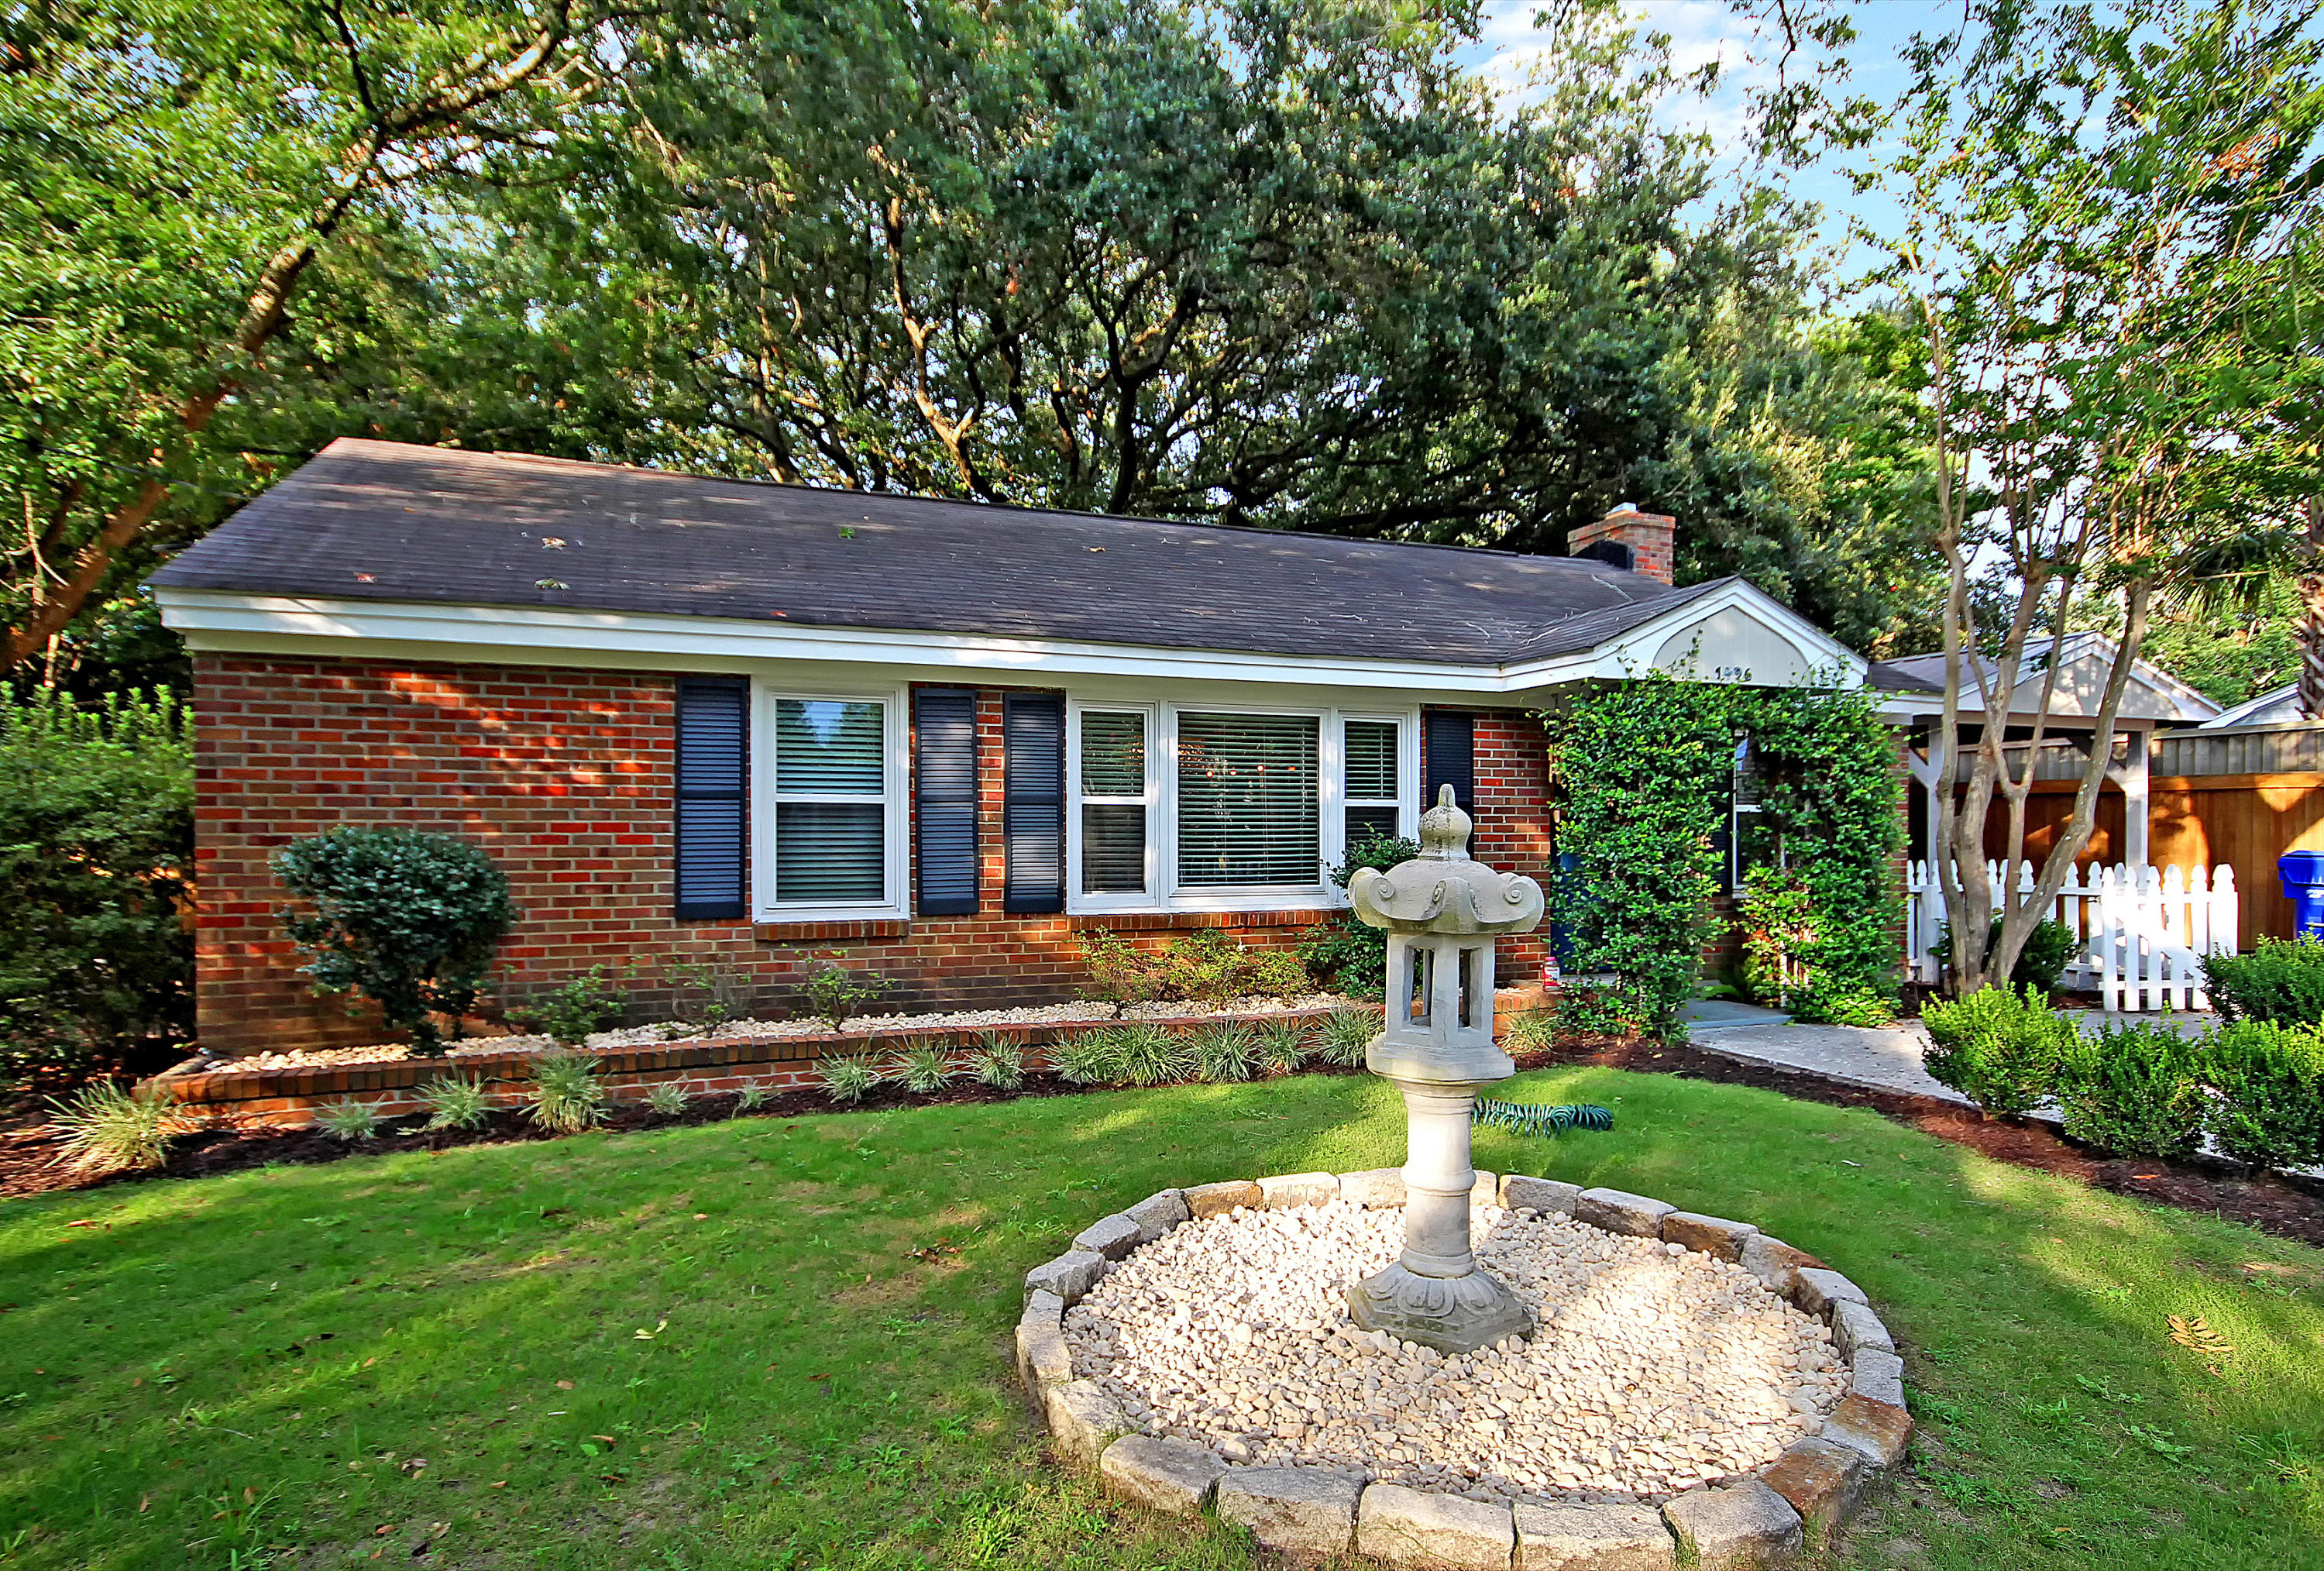 Old Mt Pleasant Homes For Sale - 1496 Indian, Mount Pleasant, SC - 12